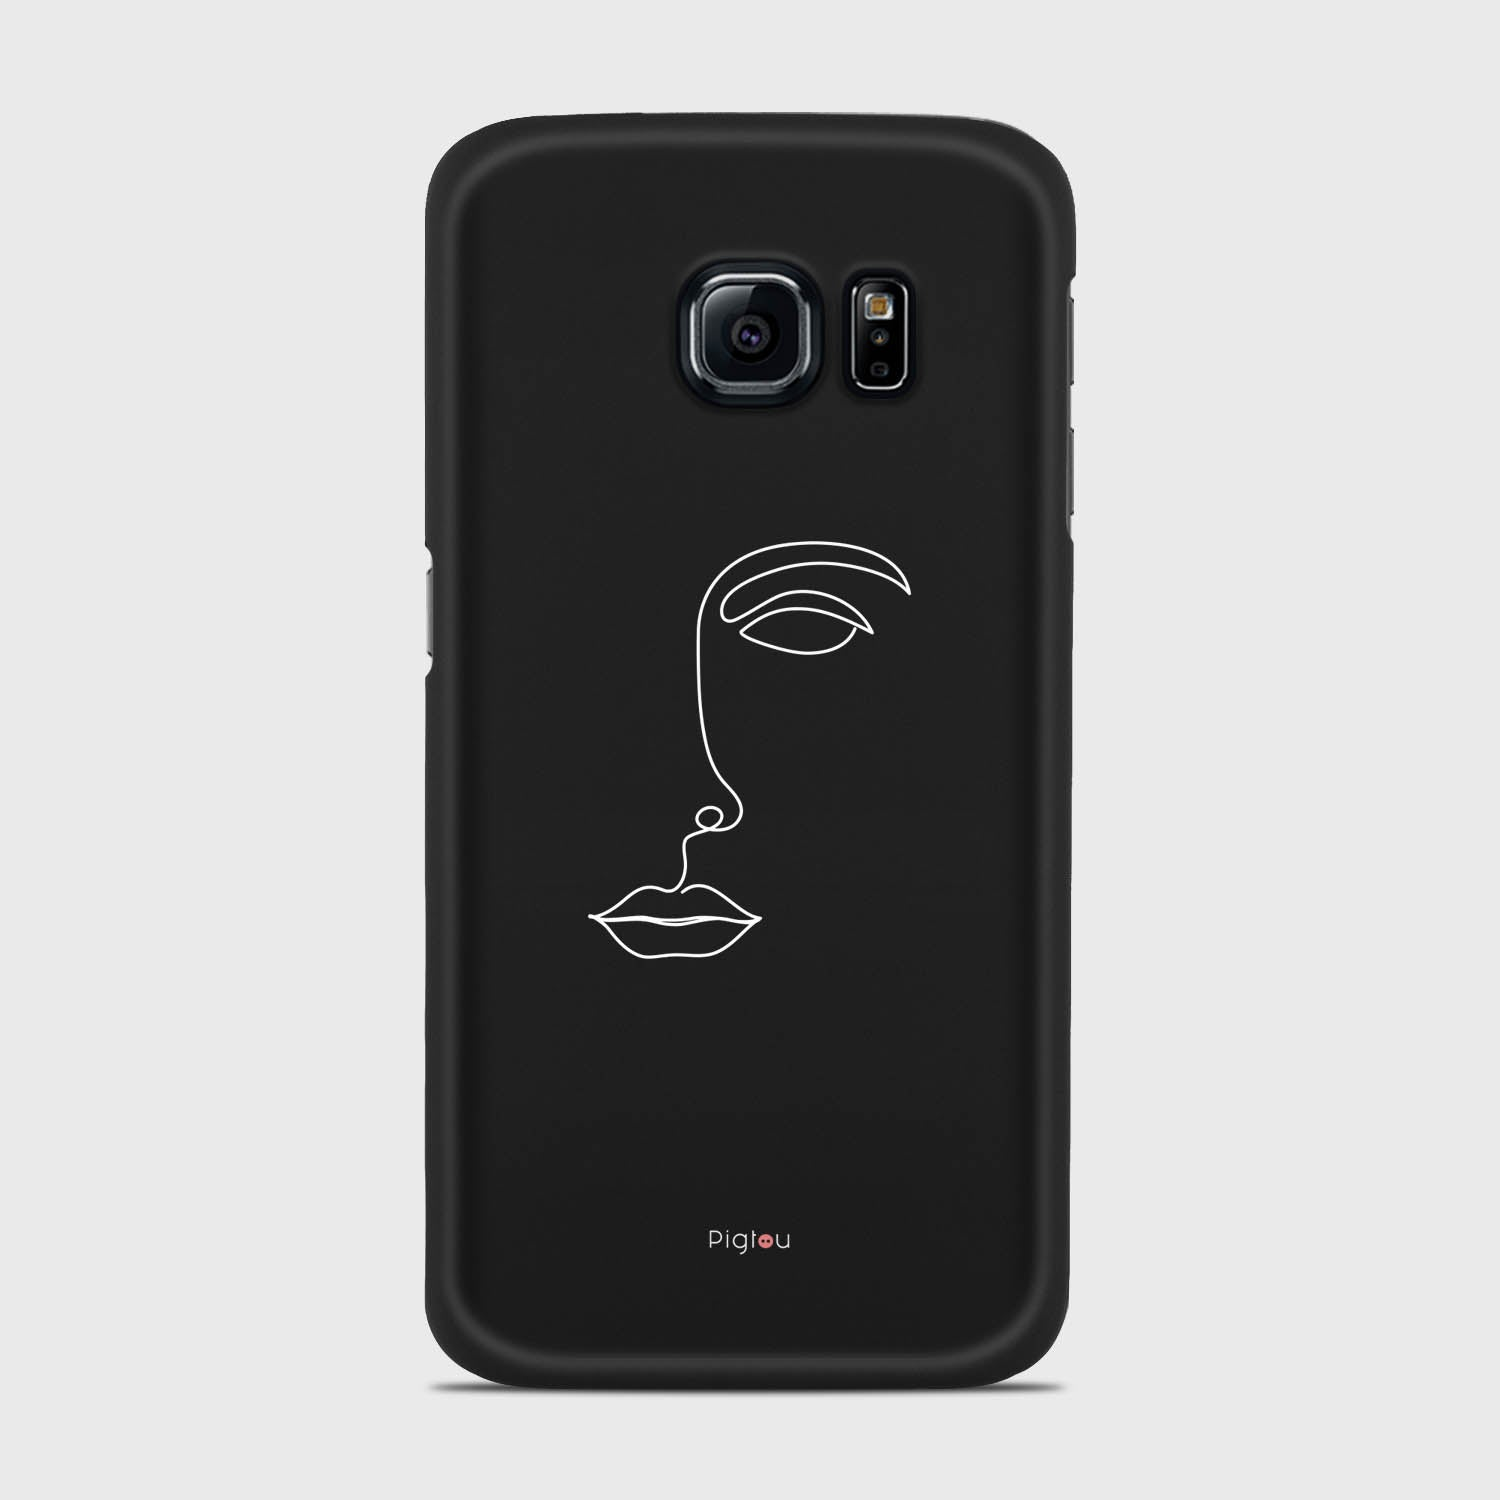 SILHOUETTE FACE Samsung Galaxy S6 Edge cases | Pigtou